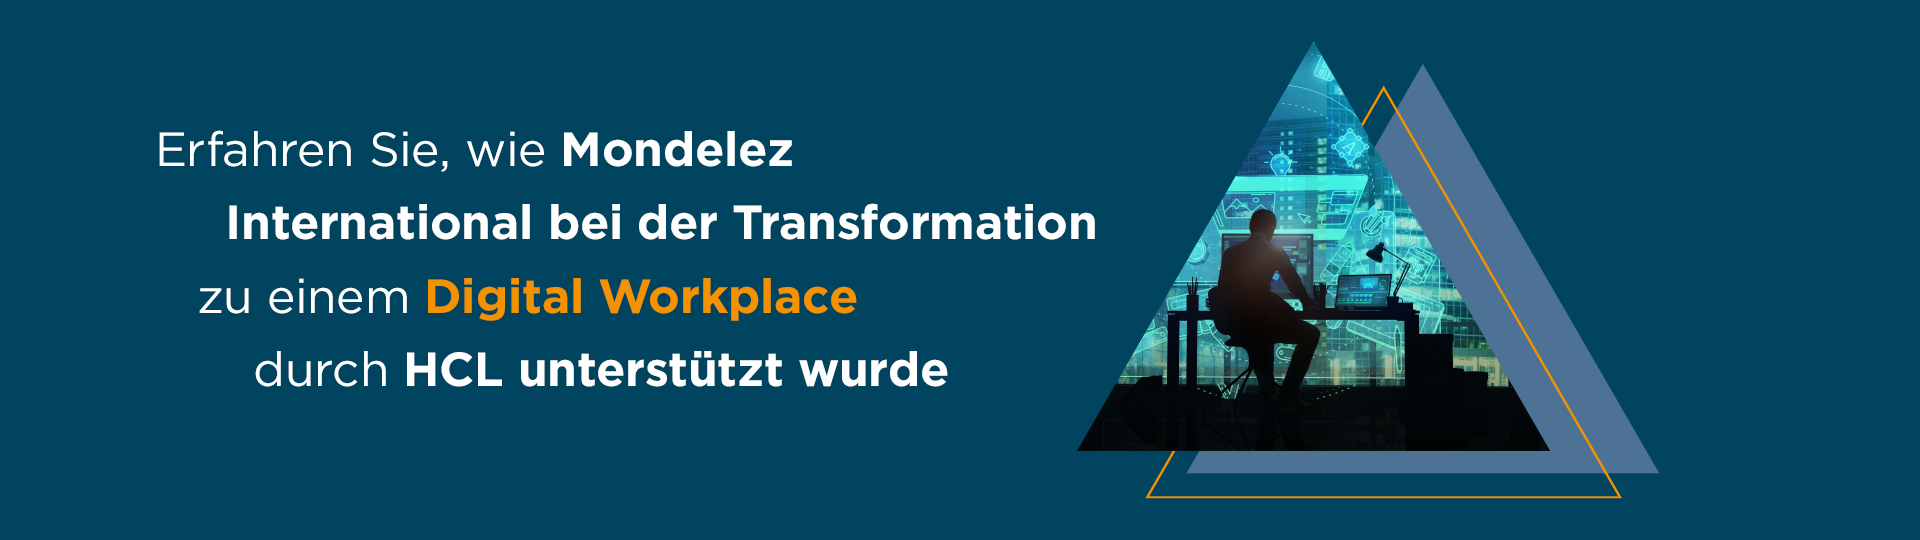 Transformation Des Digital Workplace Beim Internationalen Lebensmittelkonzern Mondelez International